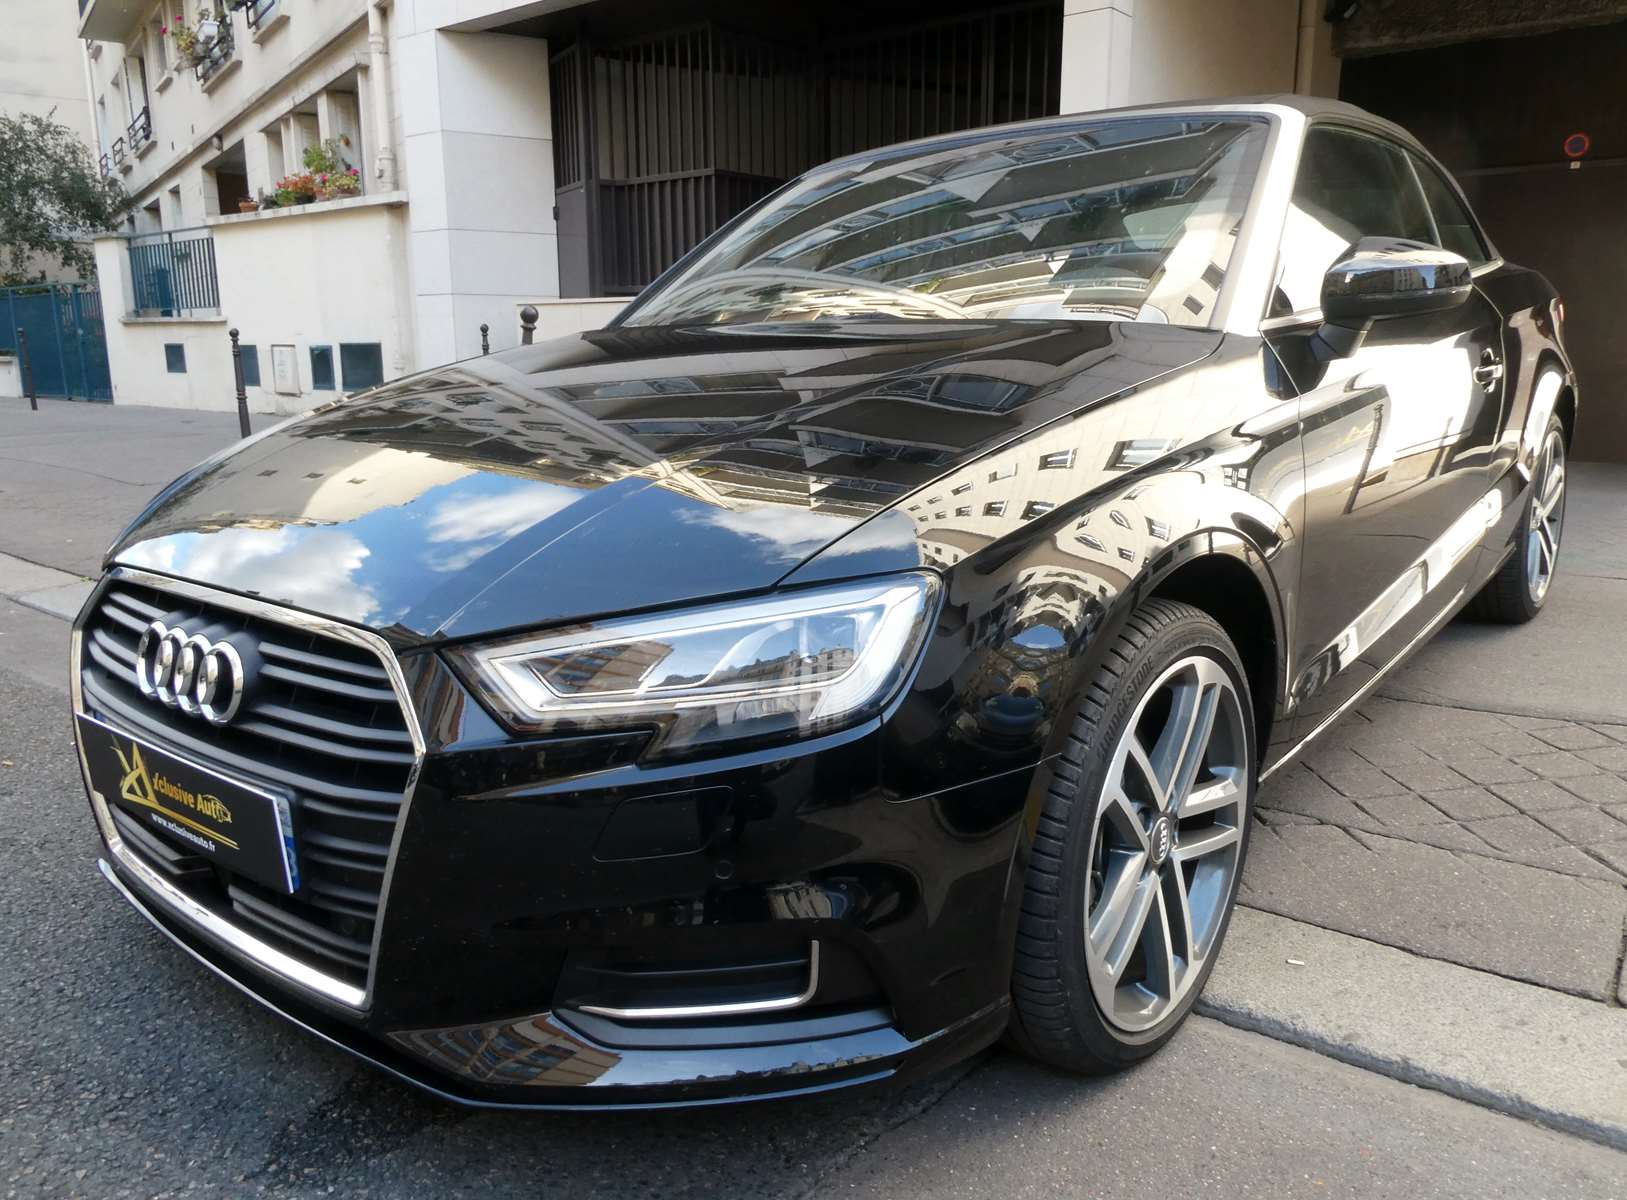 Audi A3 (2) cabriolet 35 TFSI 150 Design luxe S tronic 7 6